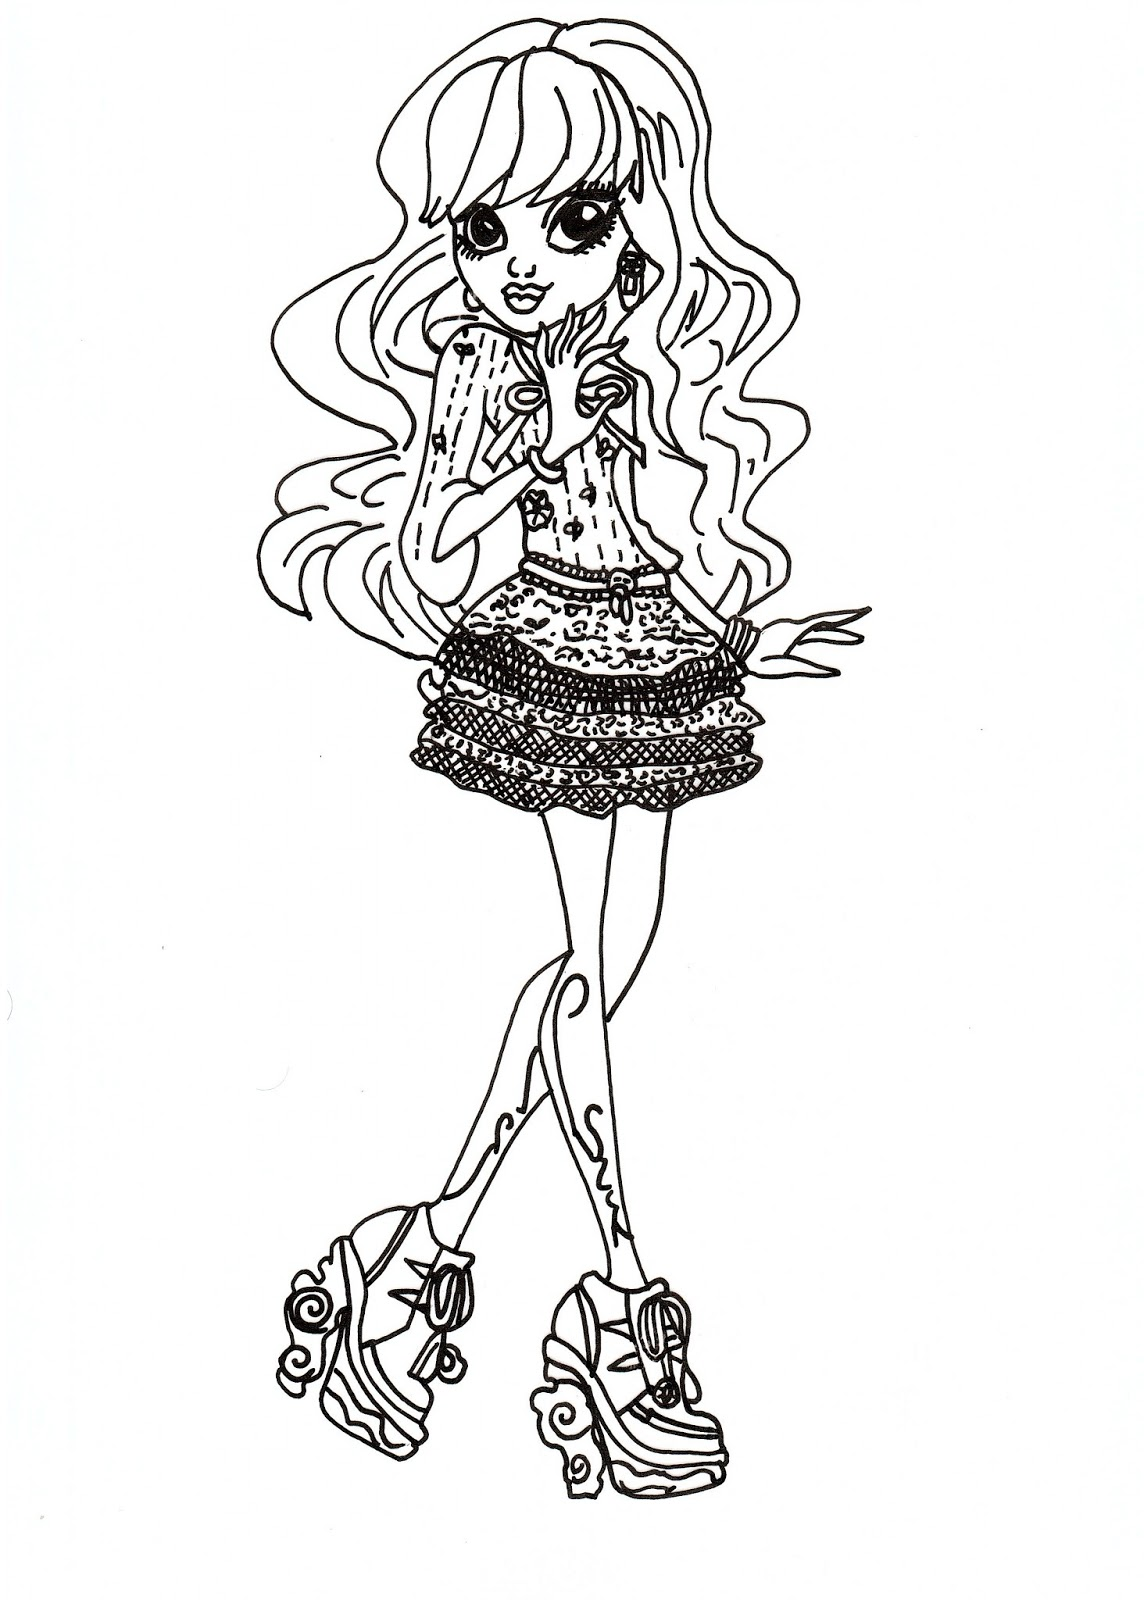 Monster High 13 Wishes Coloring Pages To Print Coloring Pages